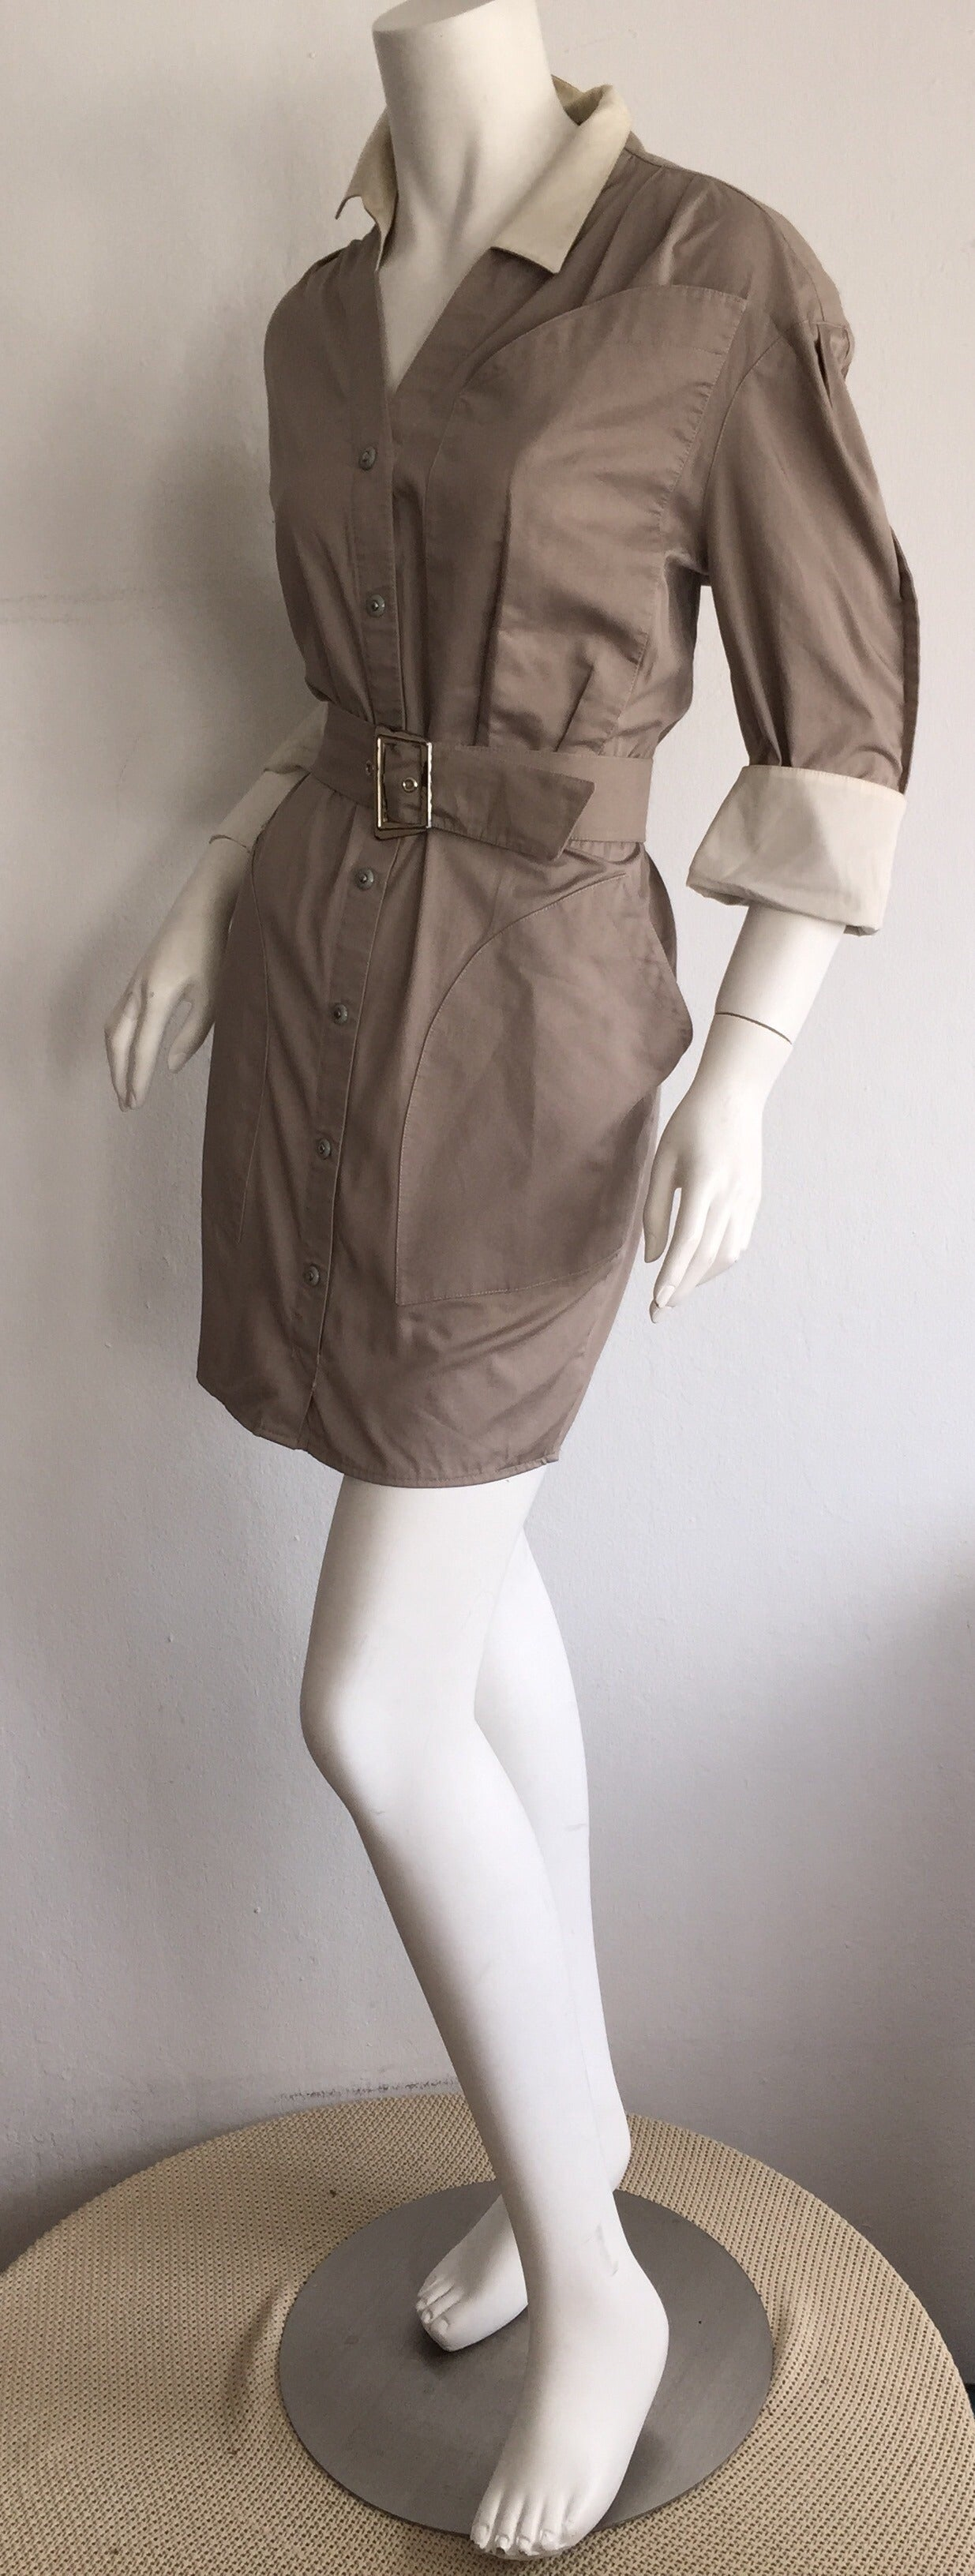 Sexy Vintage Thierry Mugler Avant Garde Belted Khaki Safari Shirt Dress 6